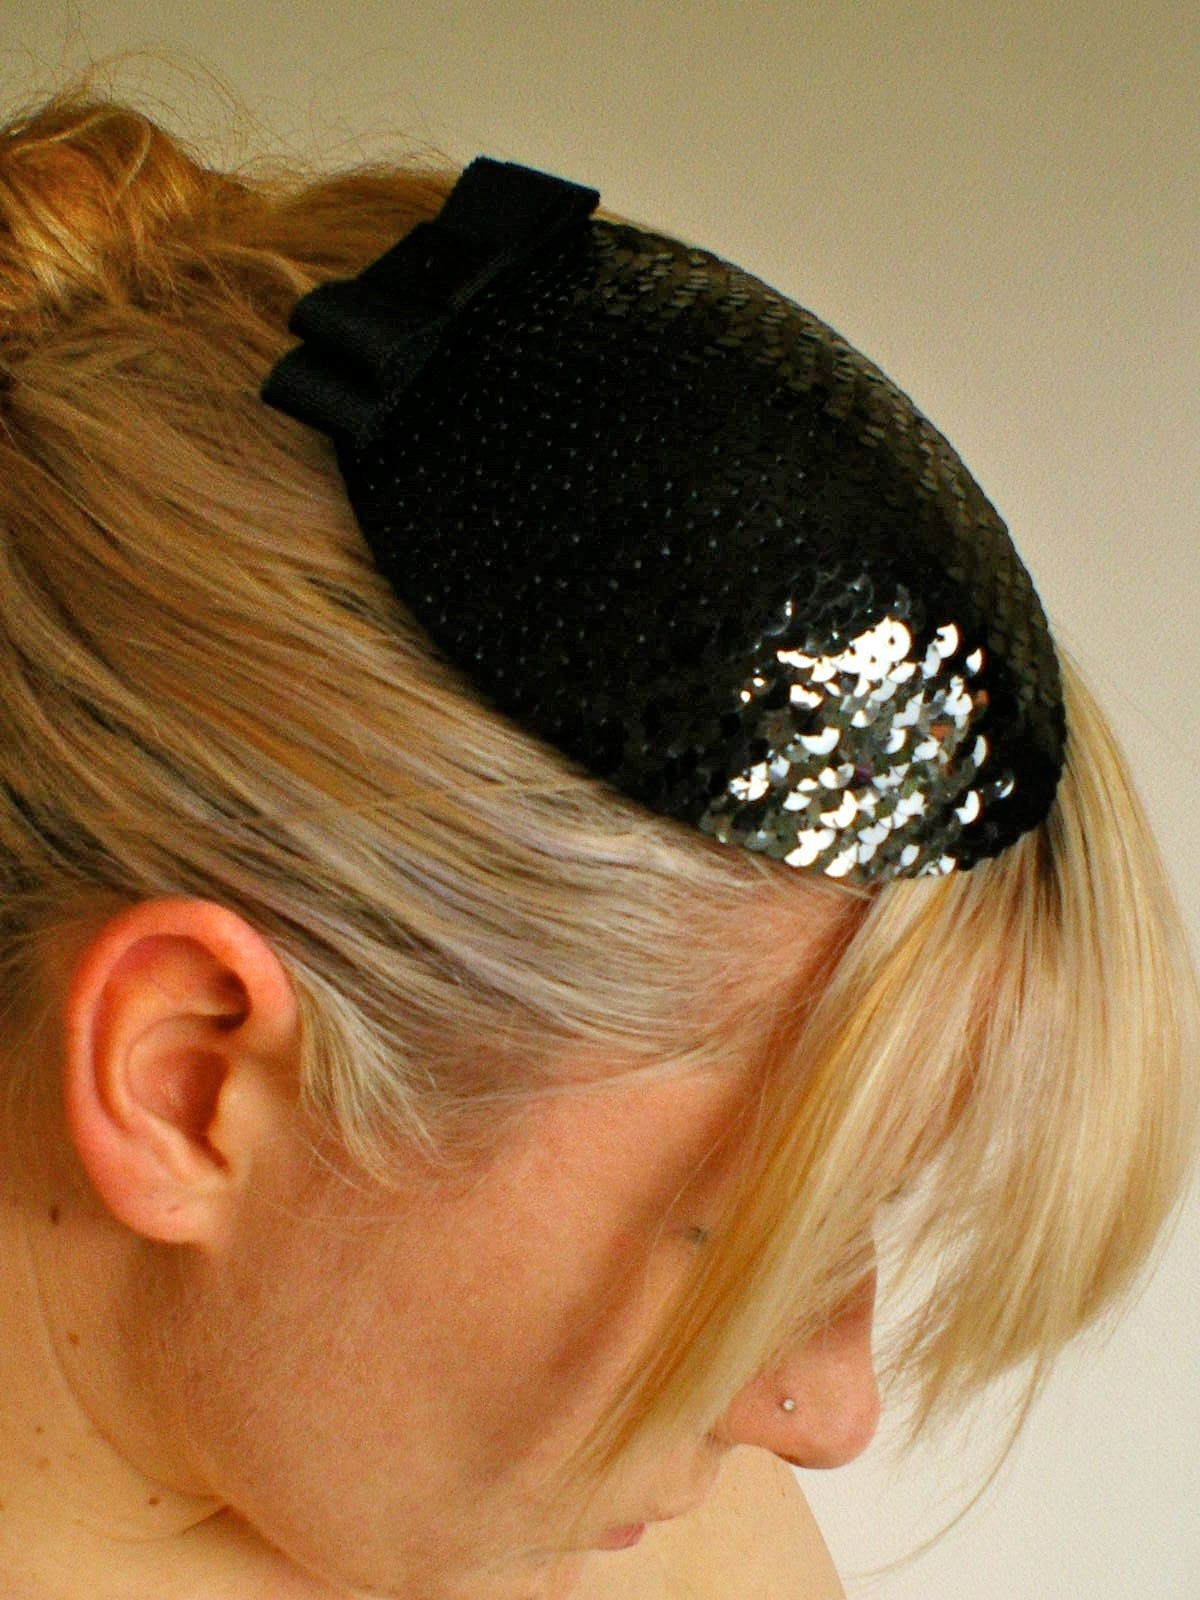 Paillette Noire- Black Sequined Fascinator